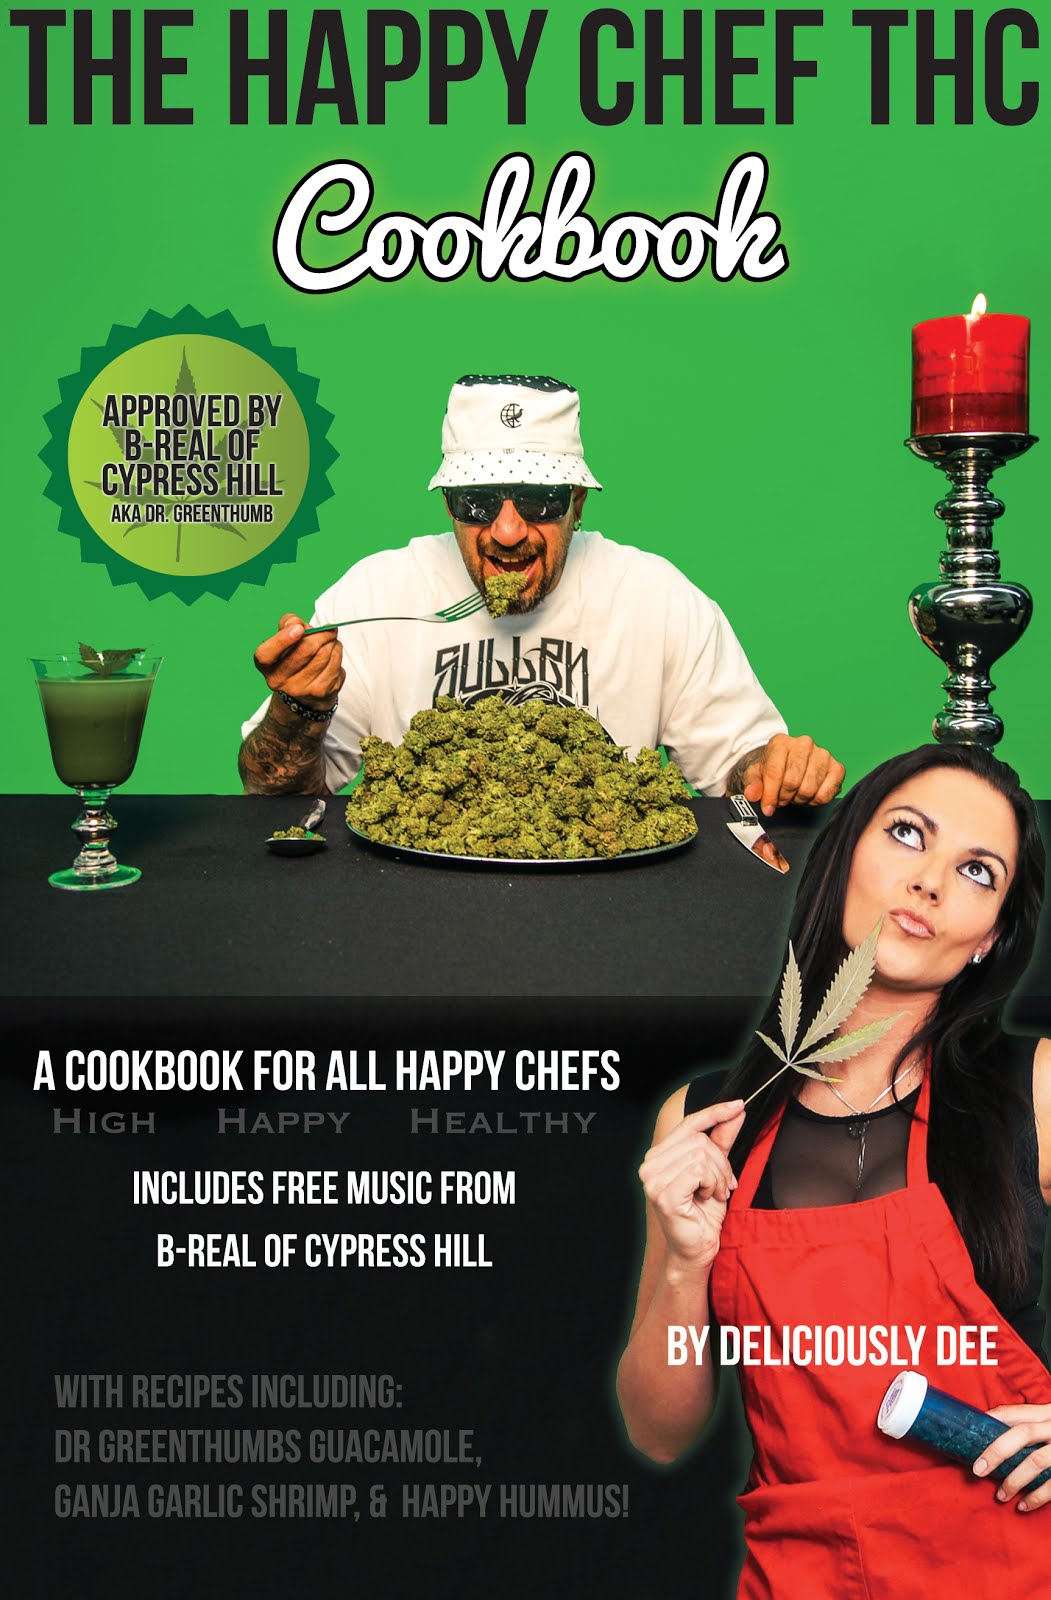 THE HAPPY CHEF THC